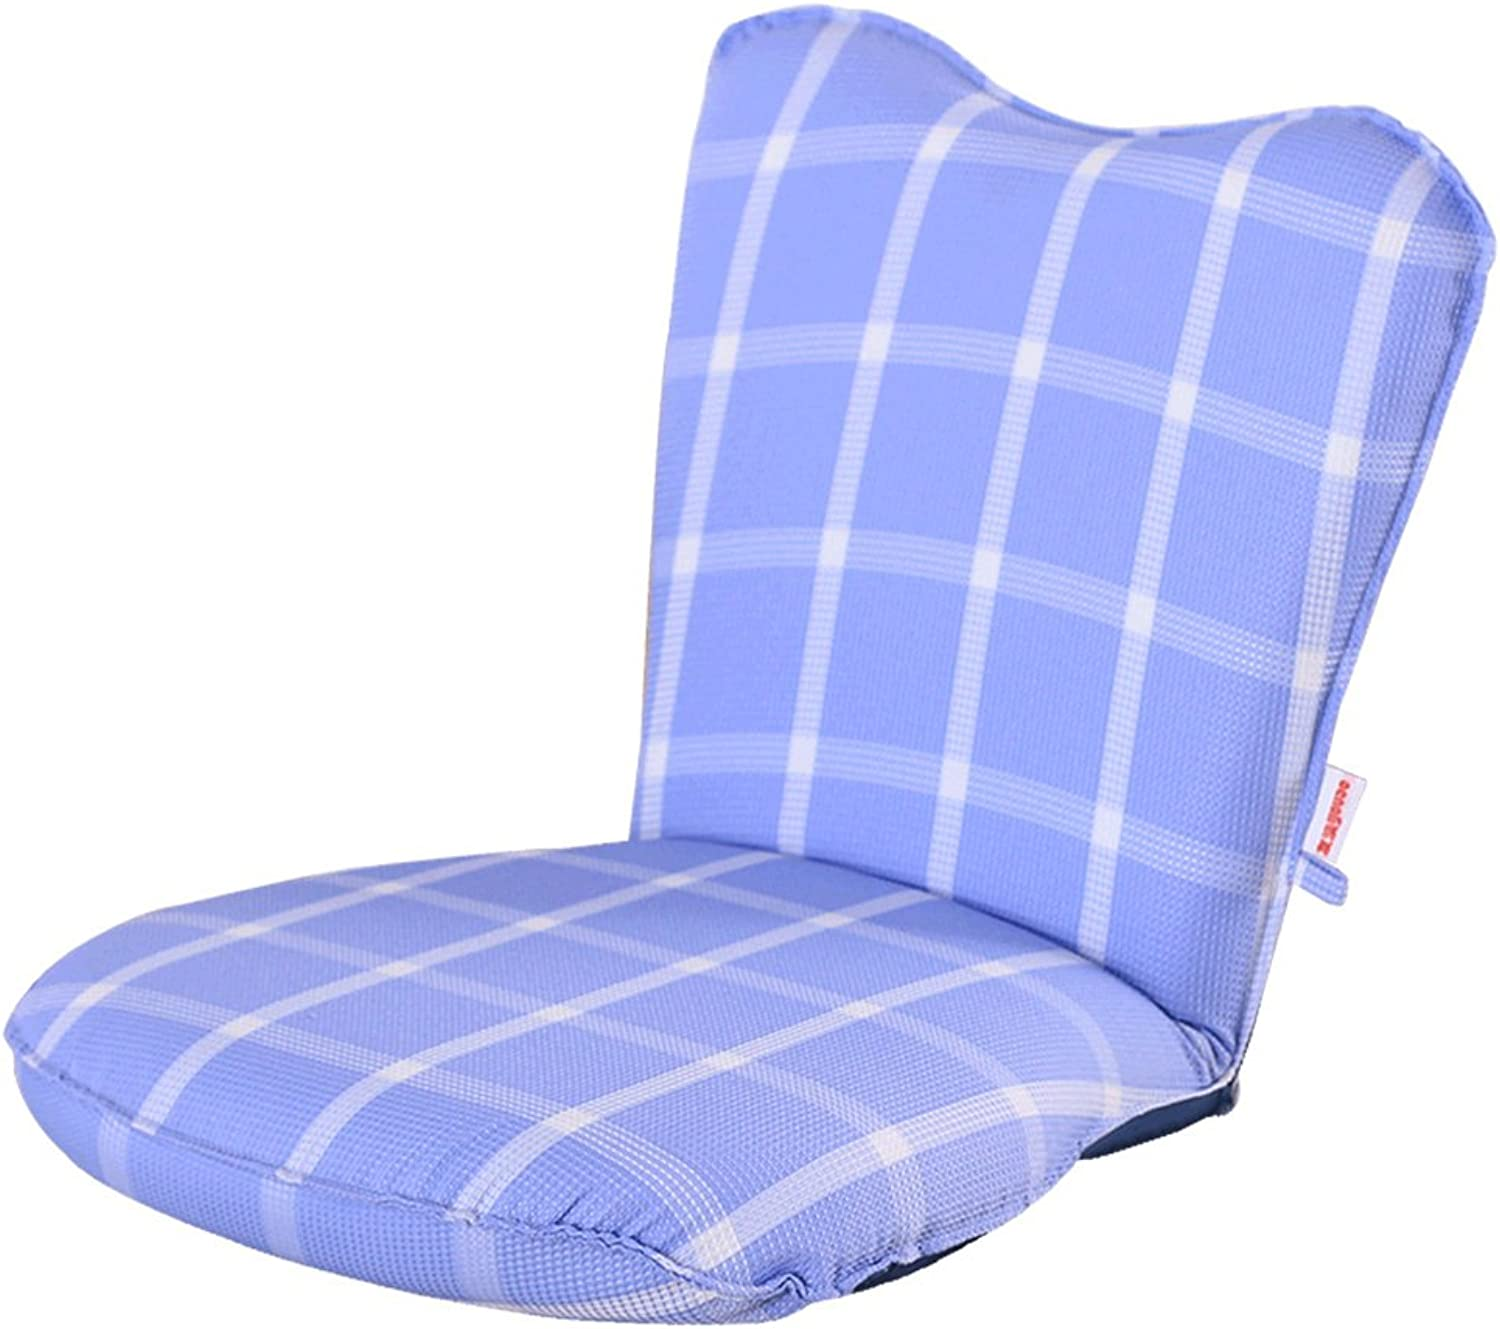 XRXY Creative Mini Foldable Small Sofa Bed Bay Window Practical Folding Chair Adjustable Computer Backrest Chair Individual Removable Floor Chair